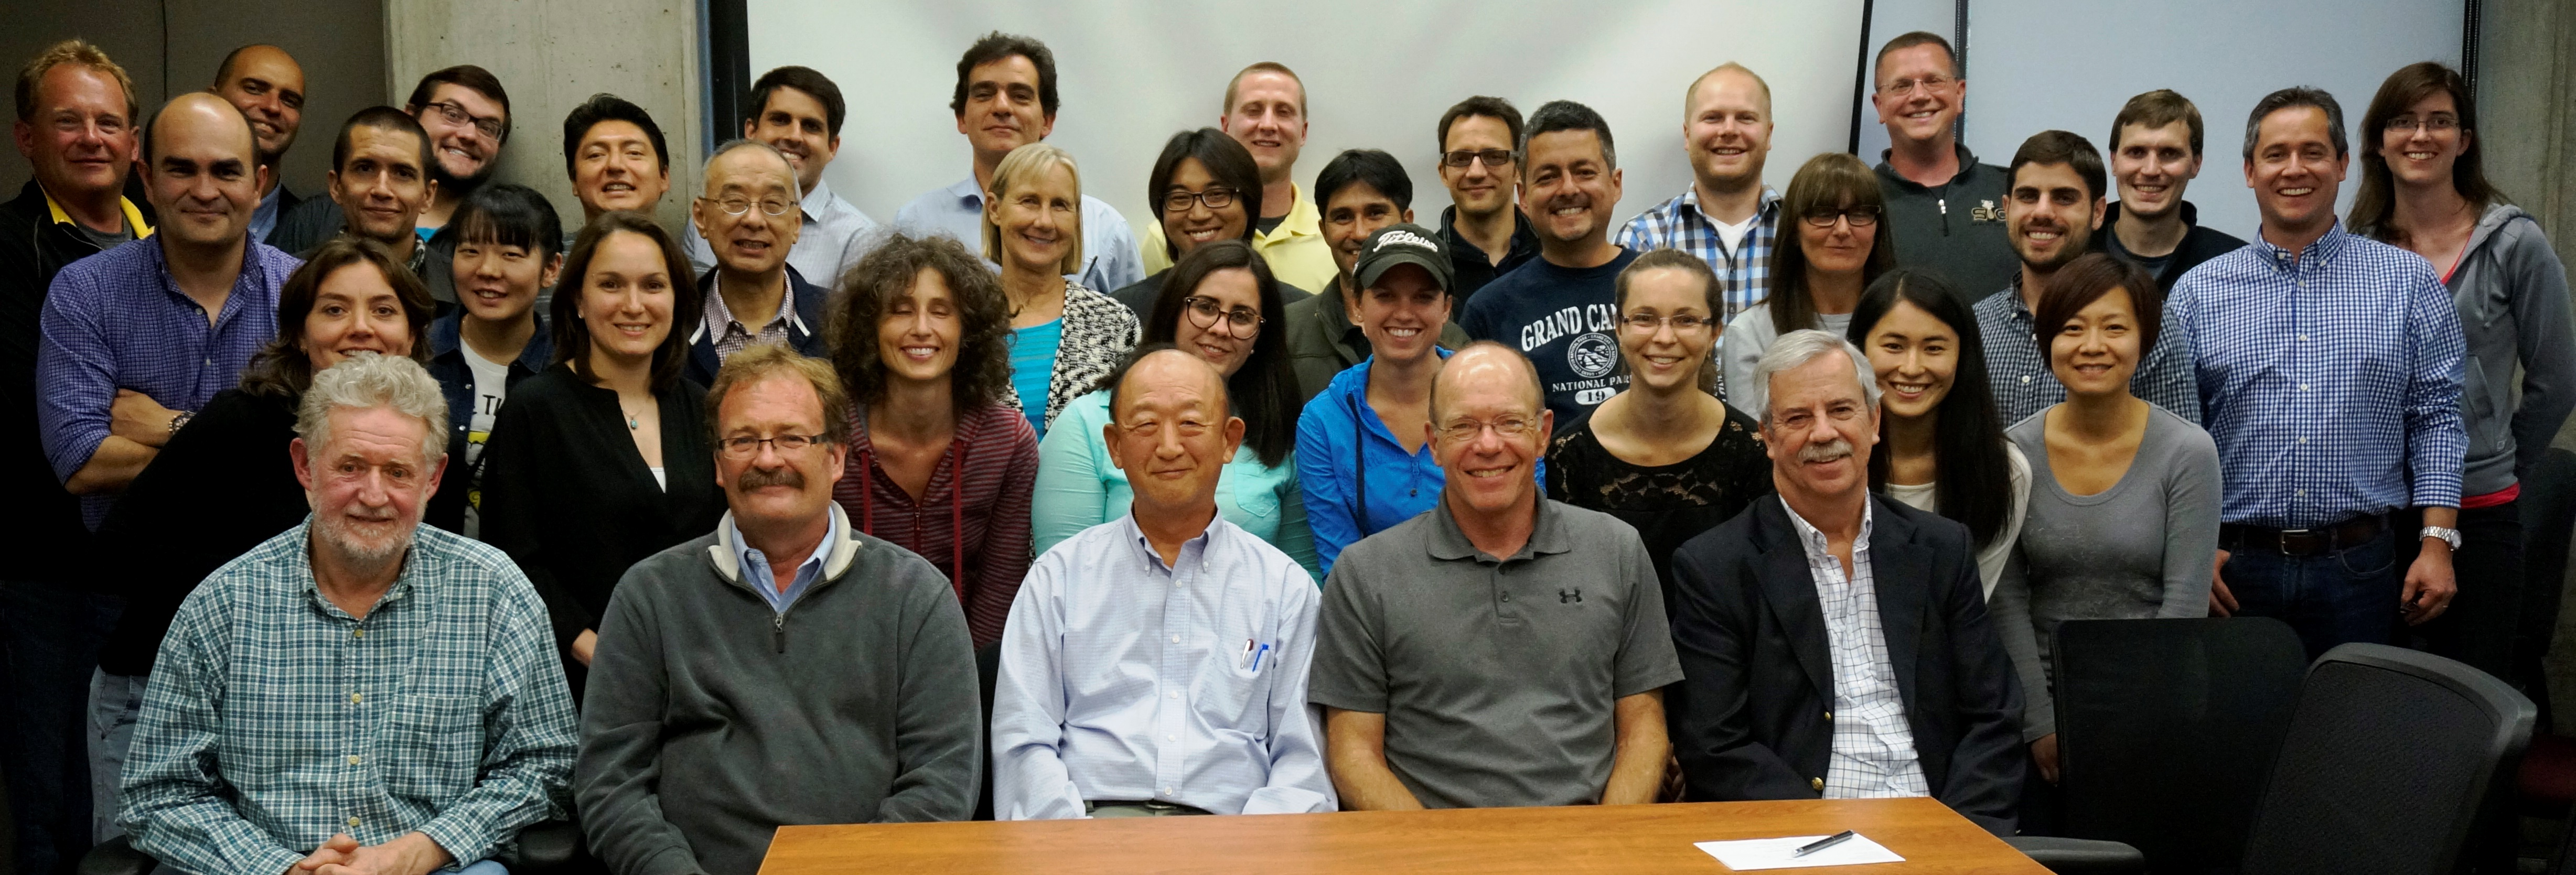 Picture of the swine faculty, staff, students